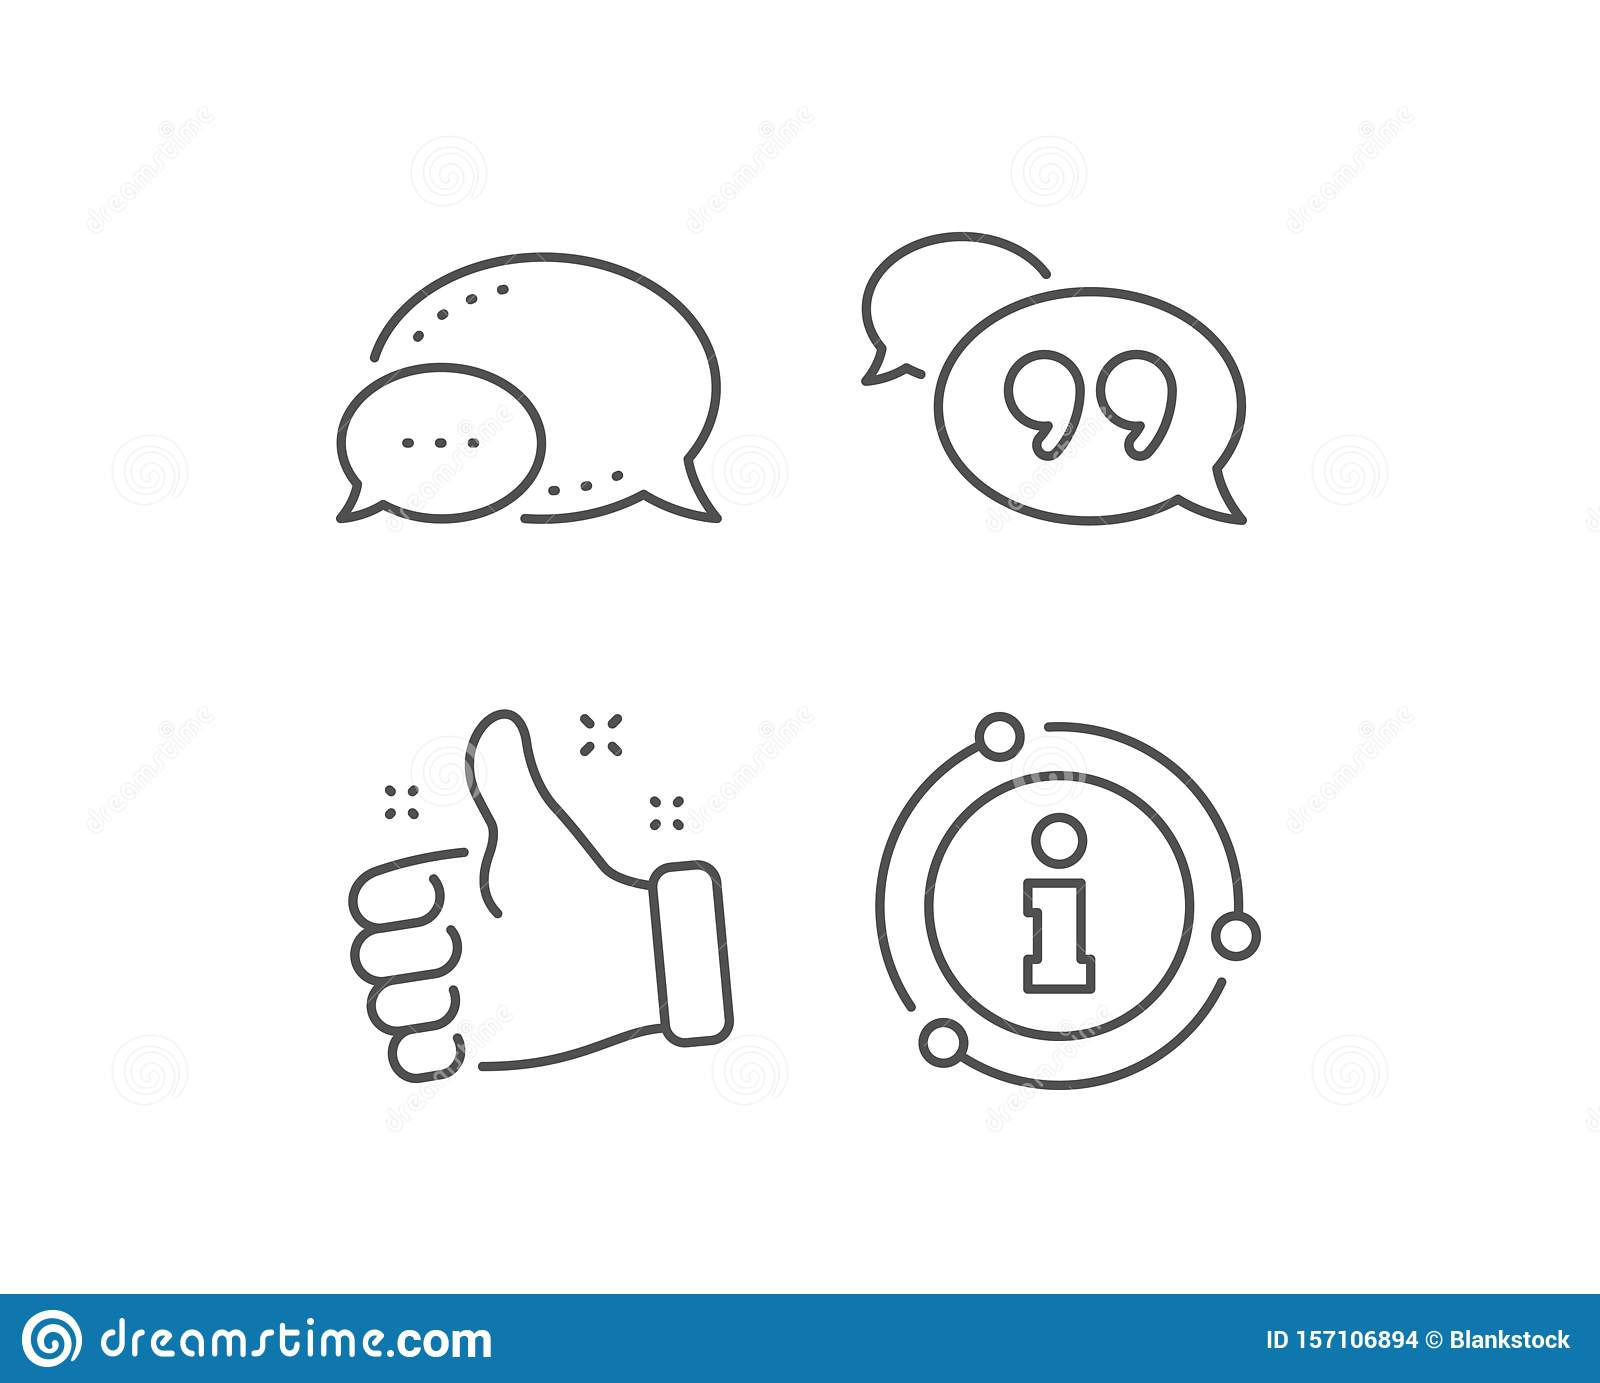 Quote bubble line icon. Chat comment sign. Speech bubble. Vector